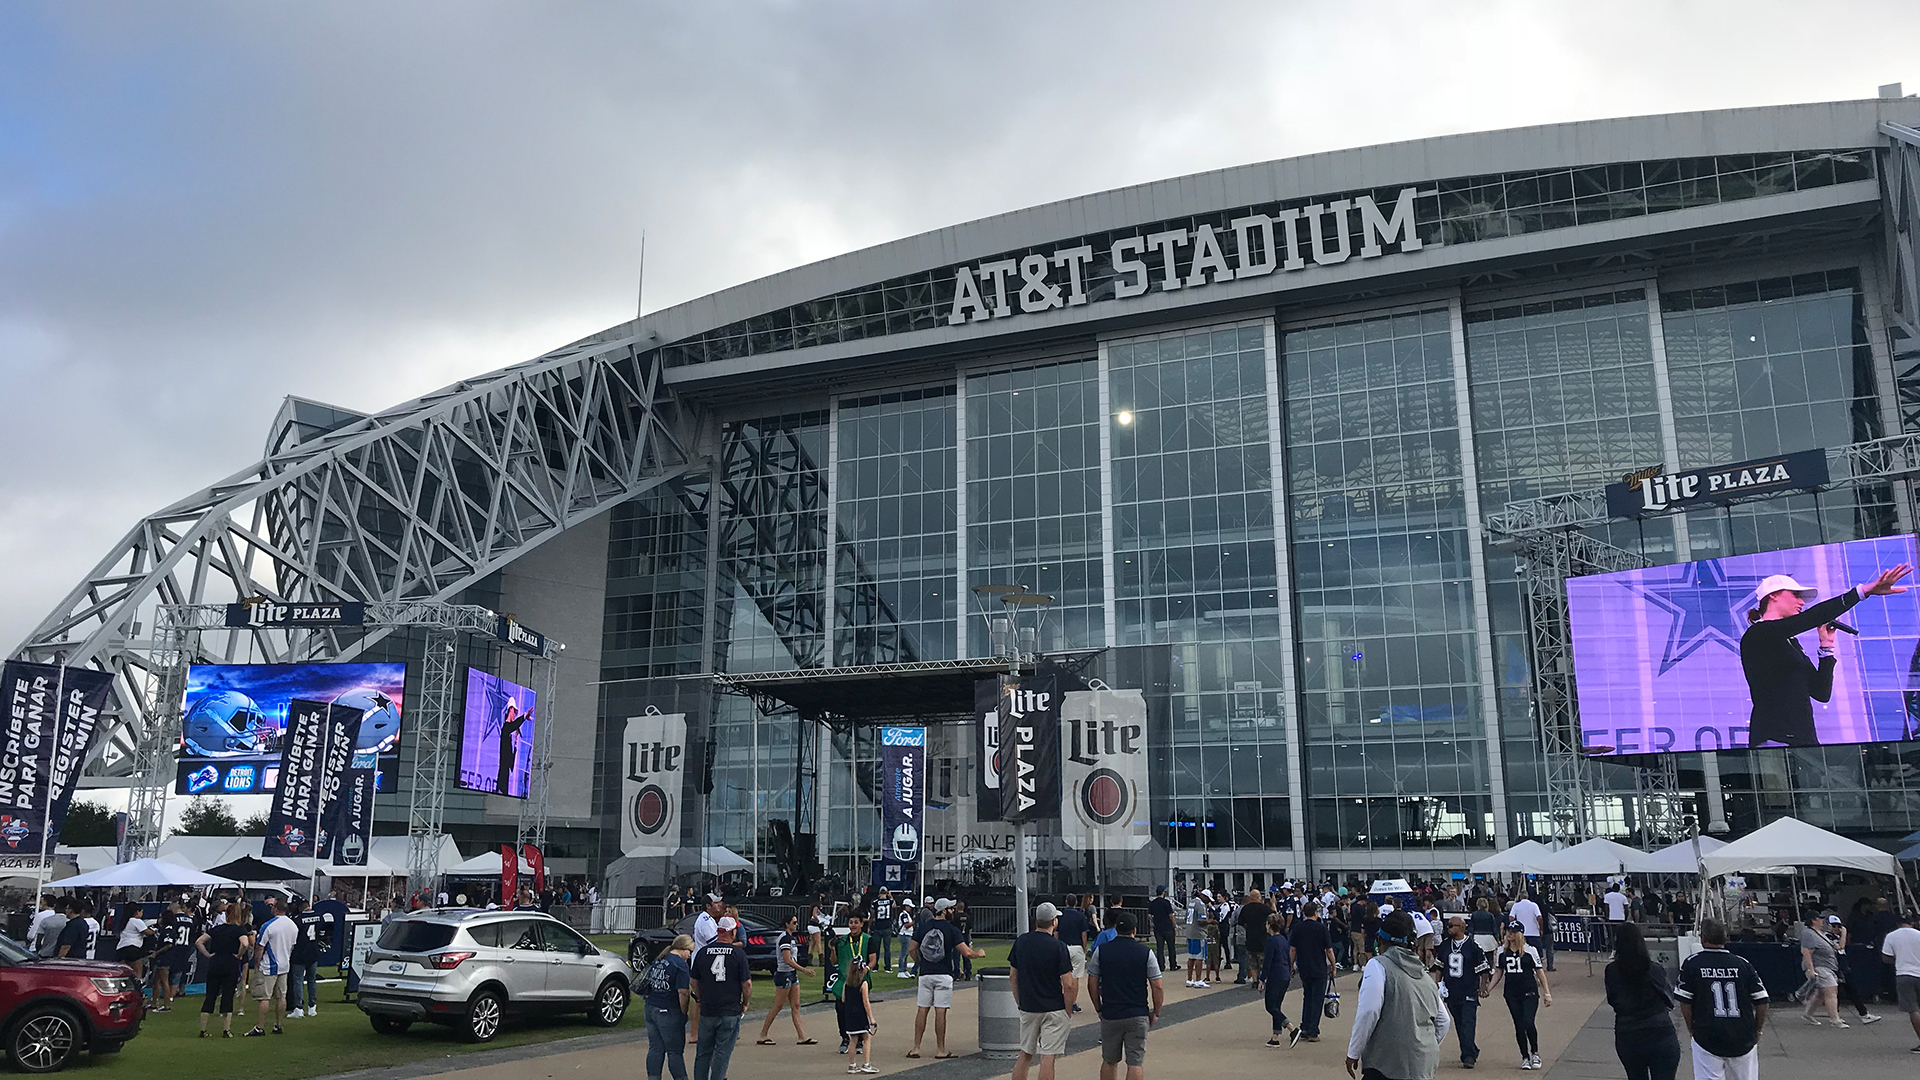 Our Guide to AT&T Stadium